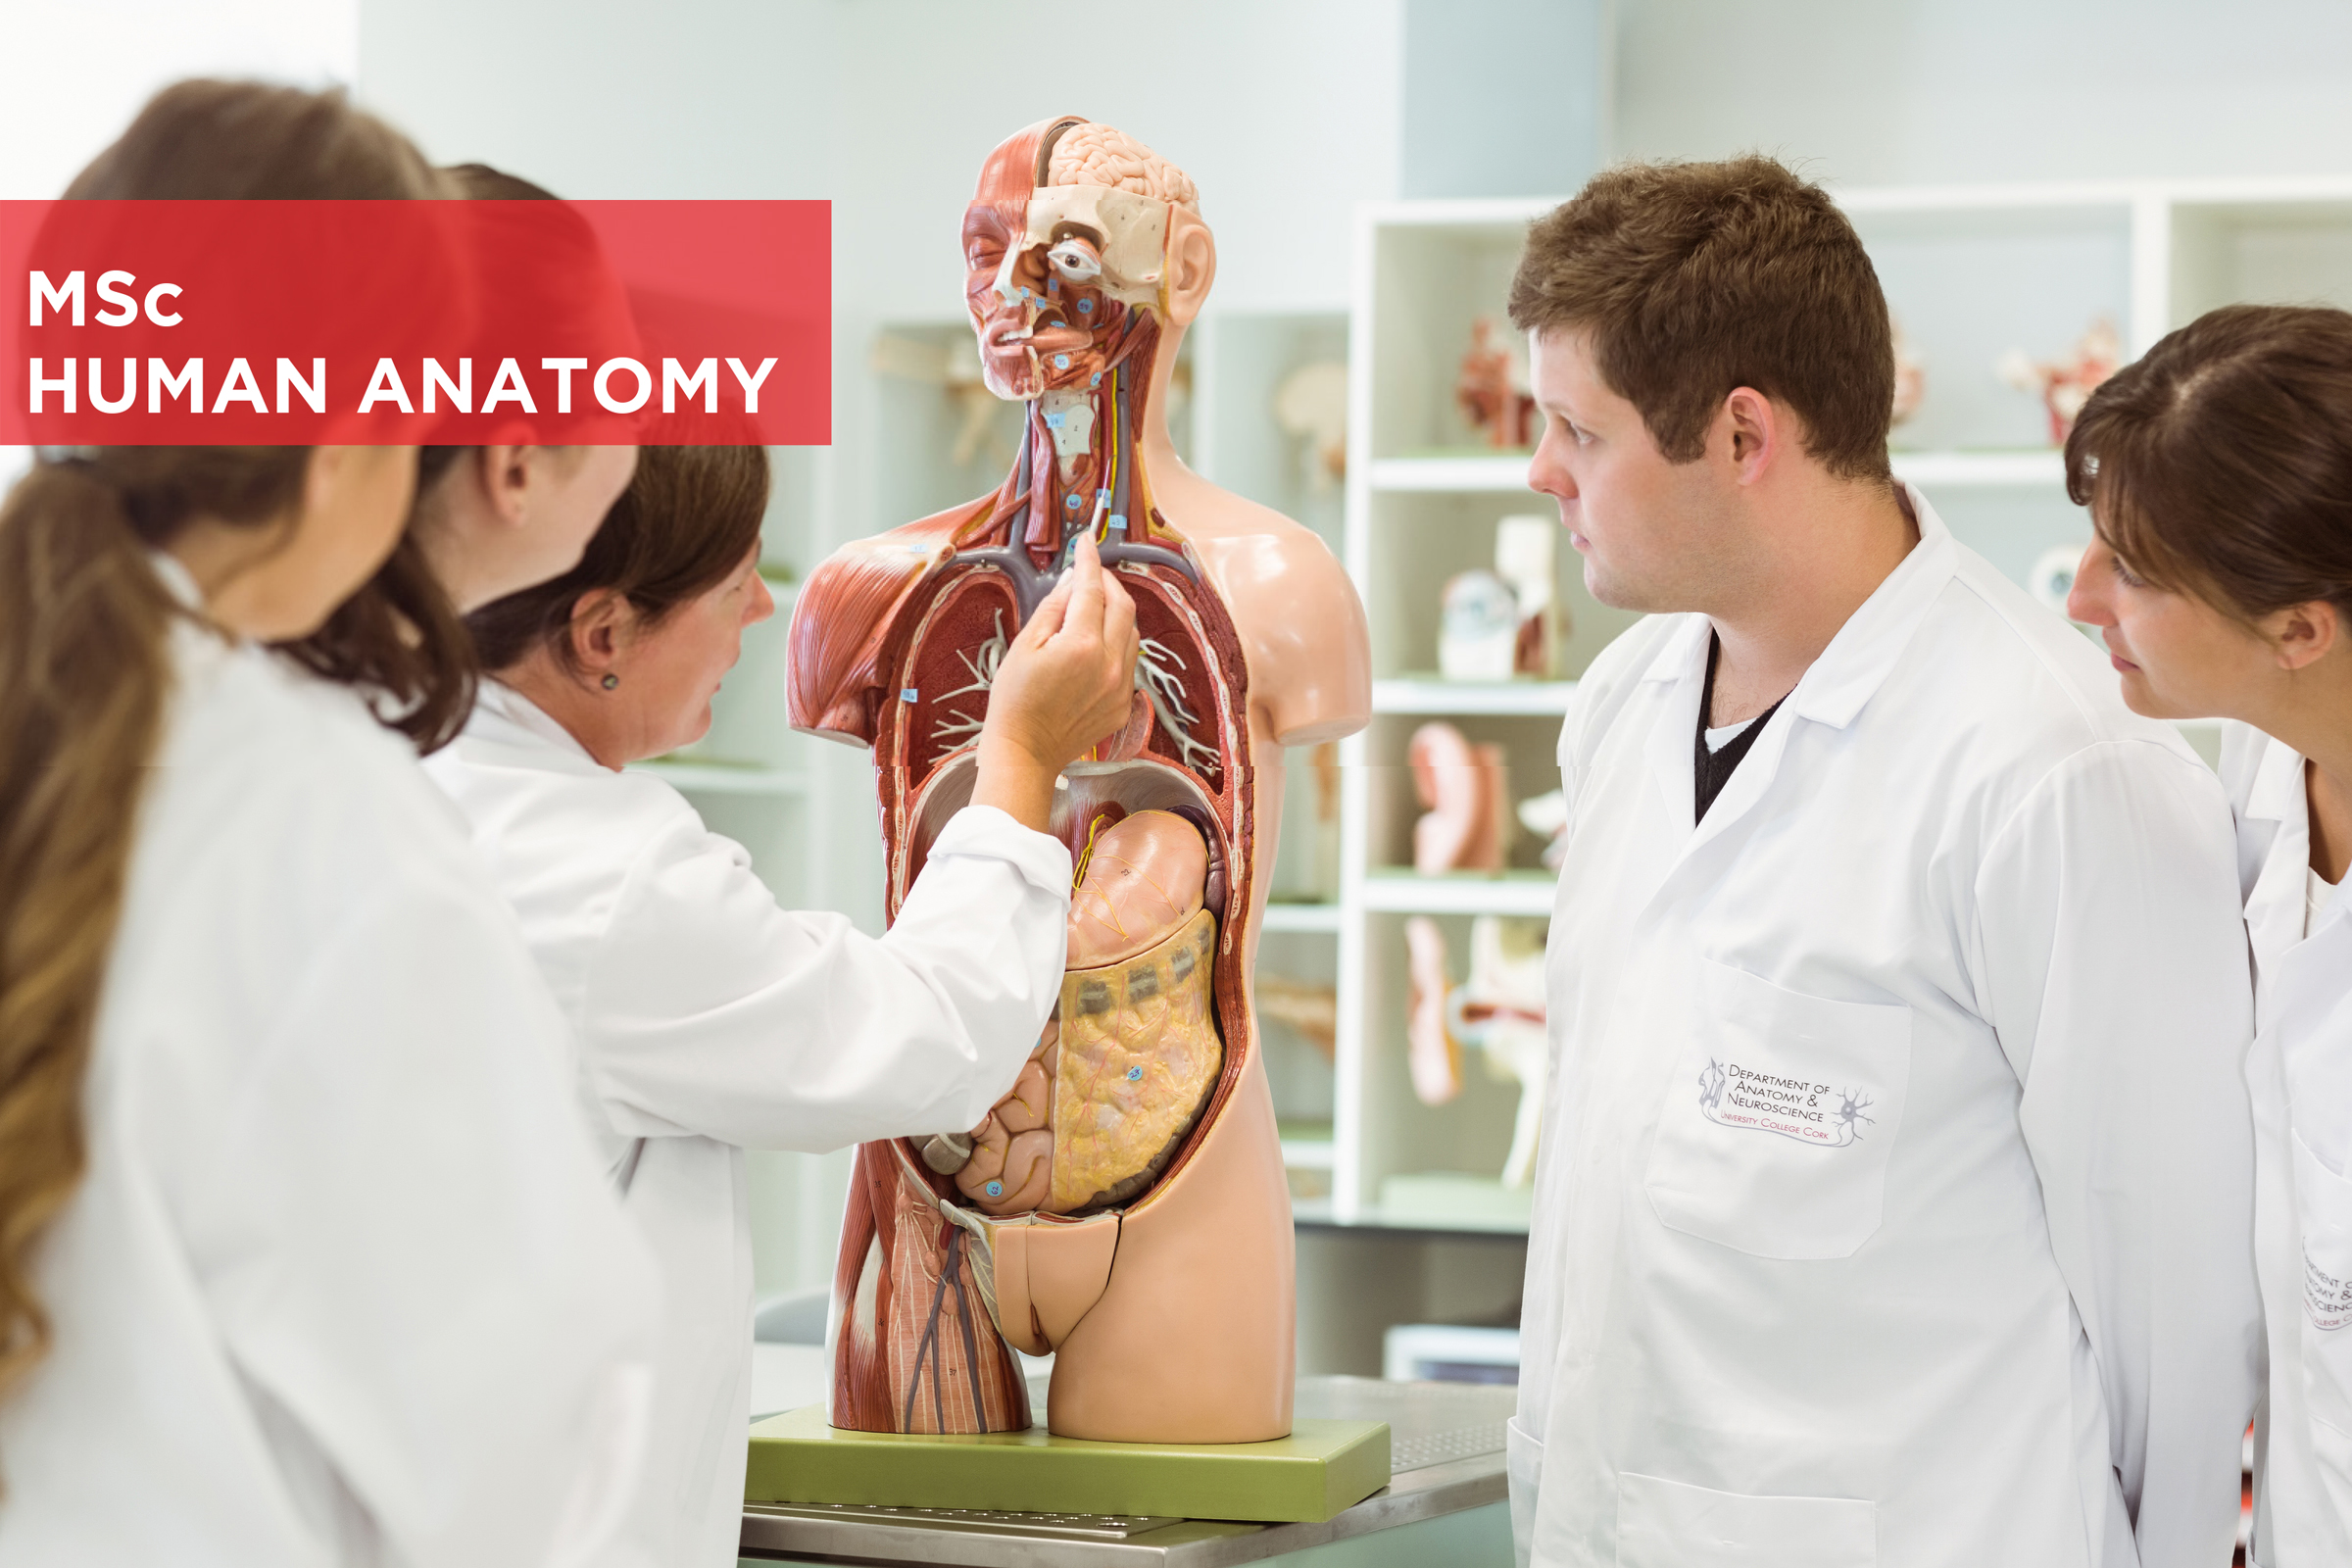 MSc Human Anatomy course 2020 Now accepting applications